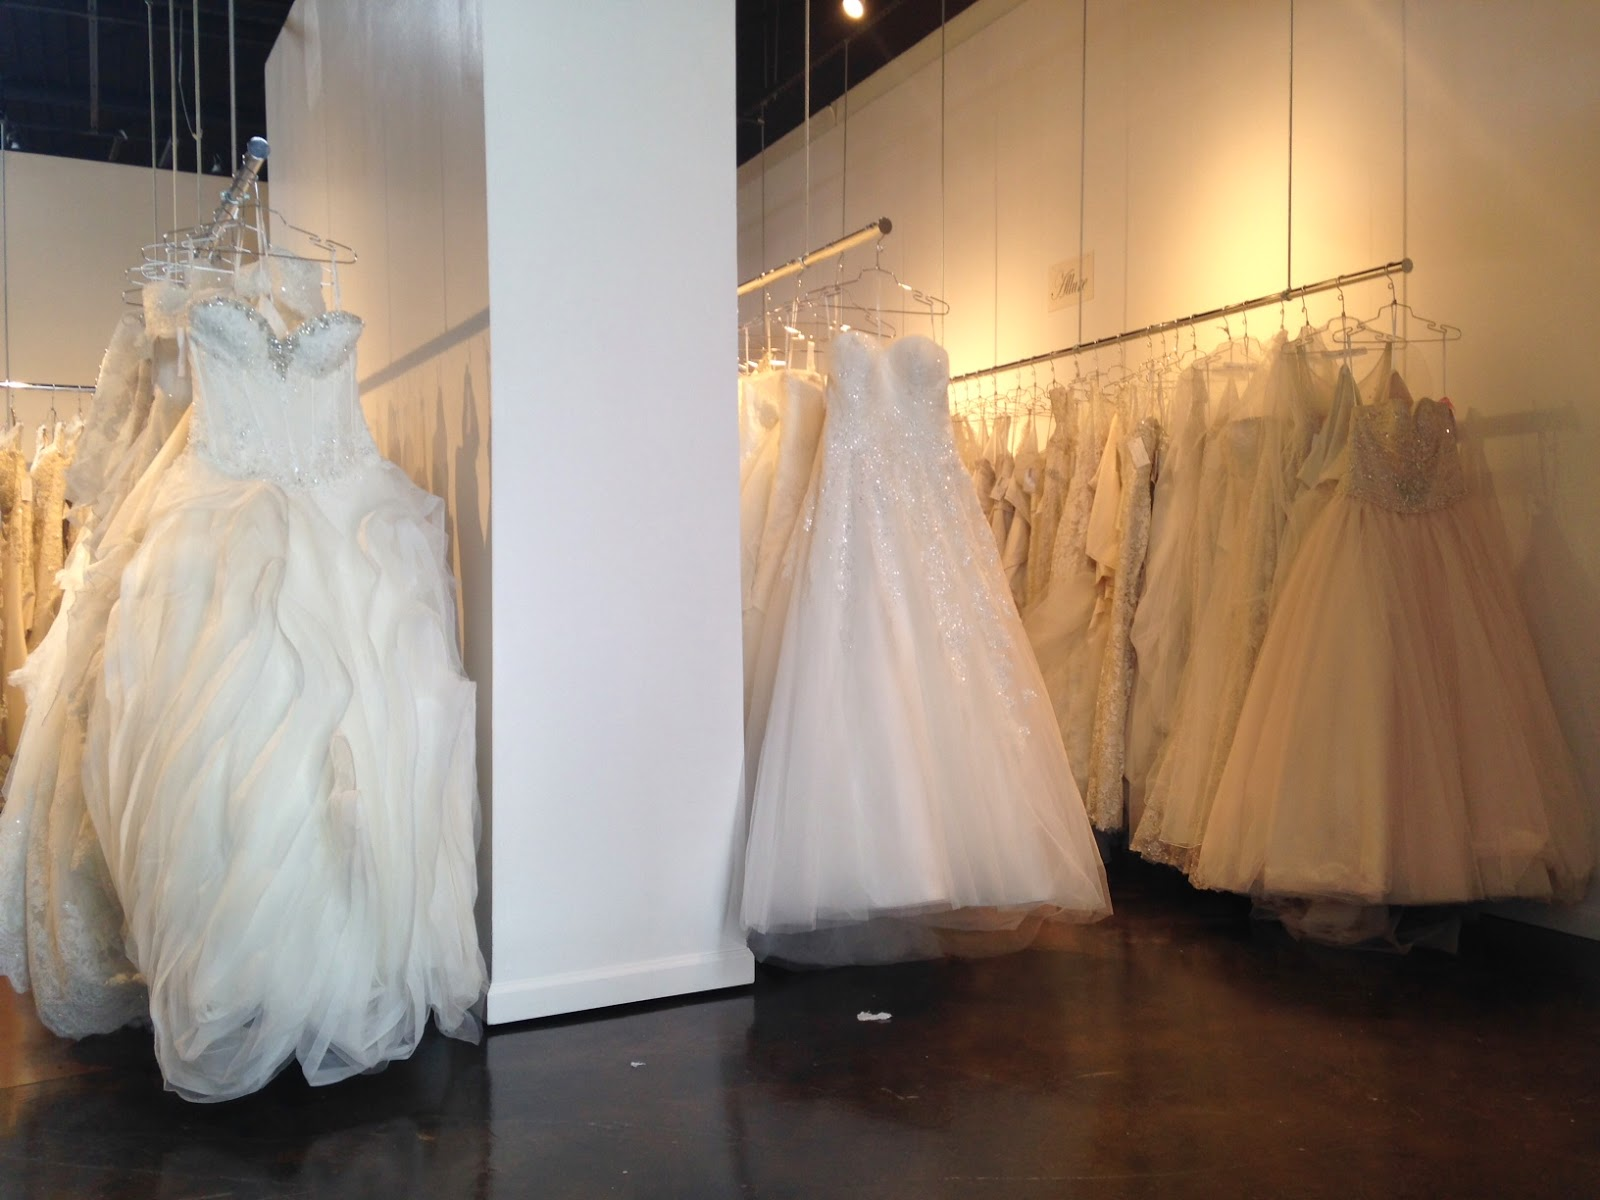 Wedding Dresses Jefferson St Dallas Tx : More fun pics of lulu s new location stardust celebrations